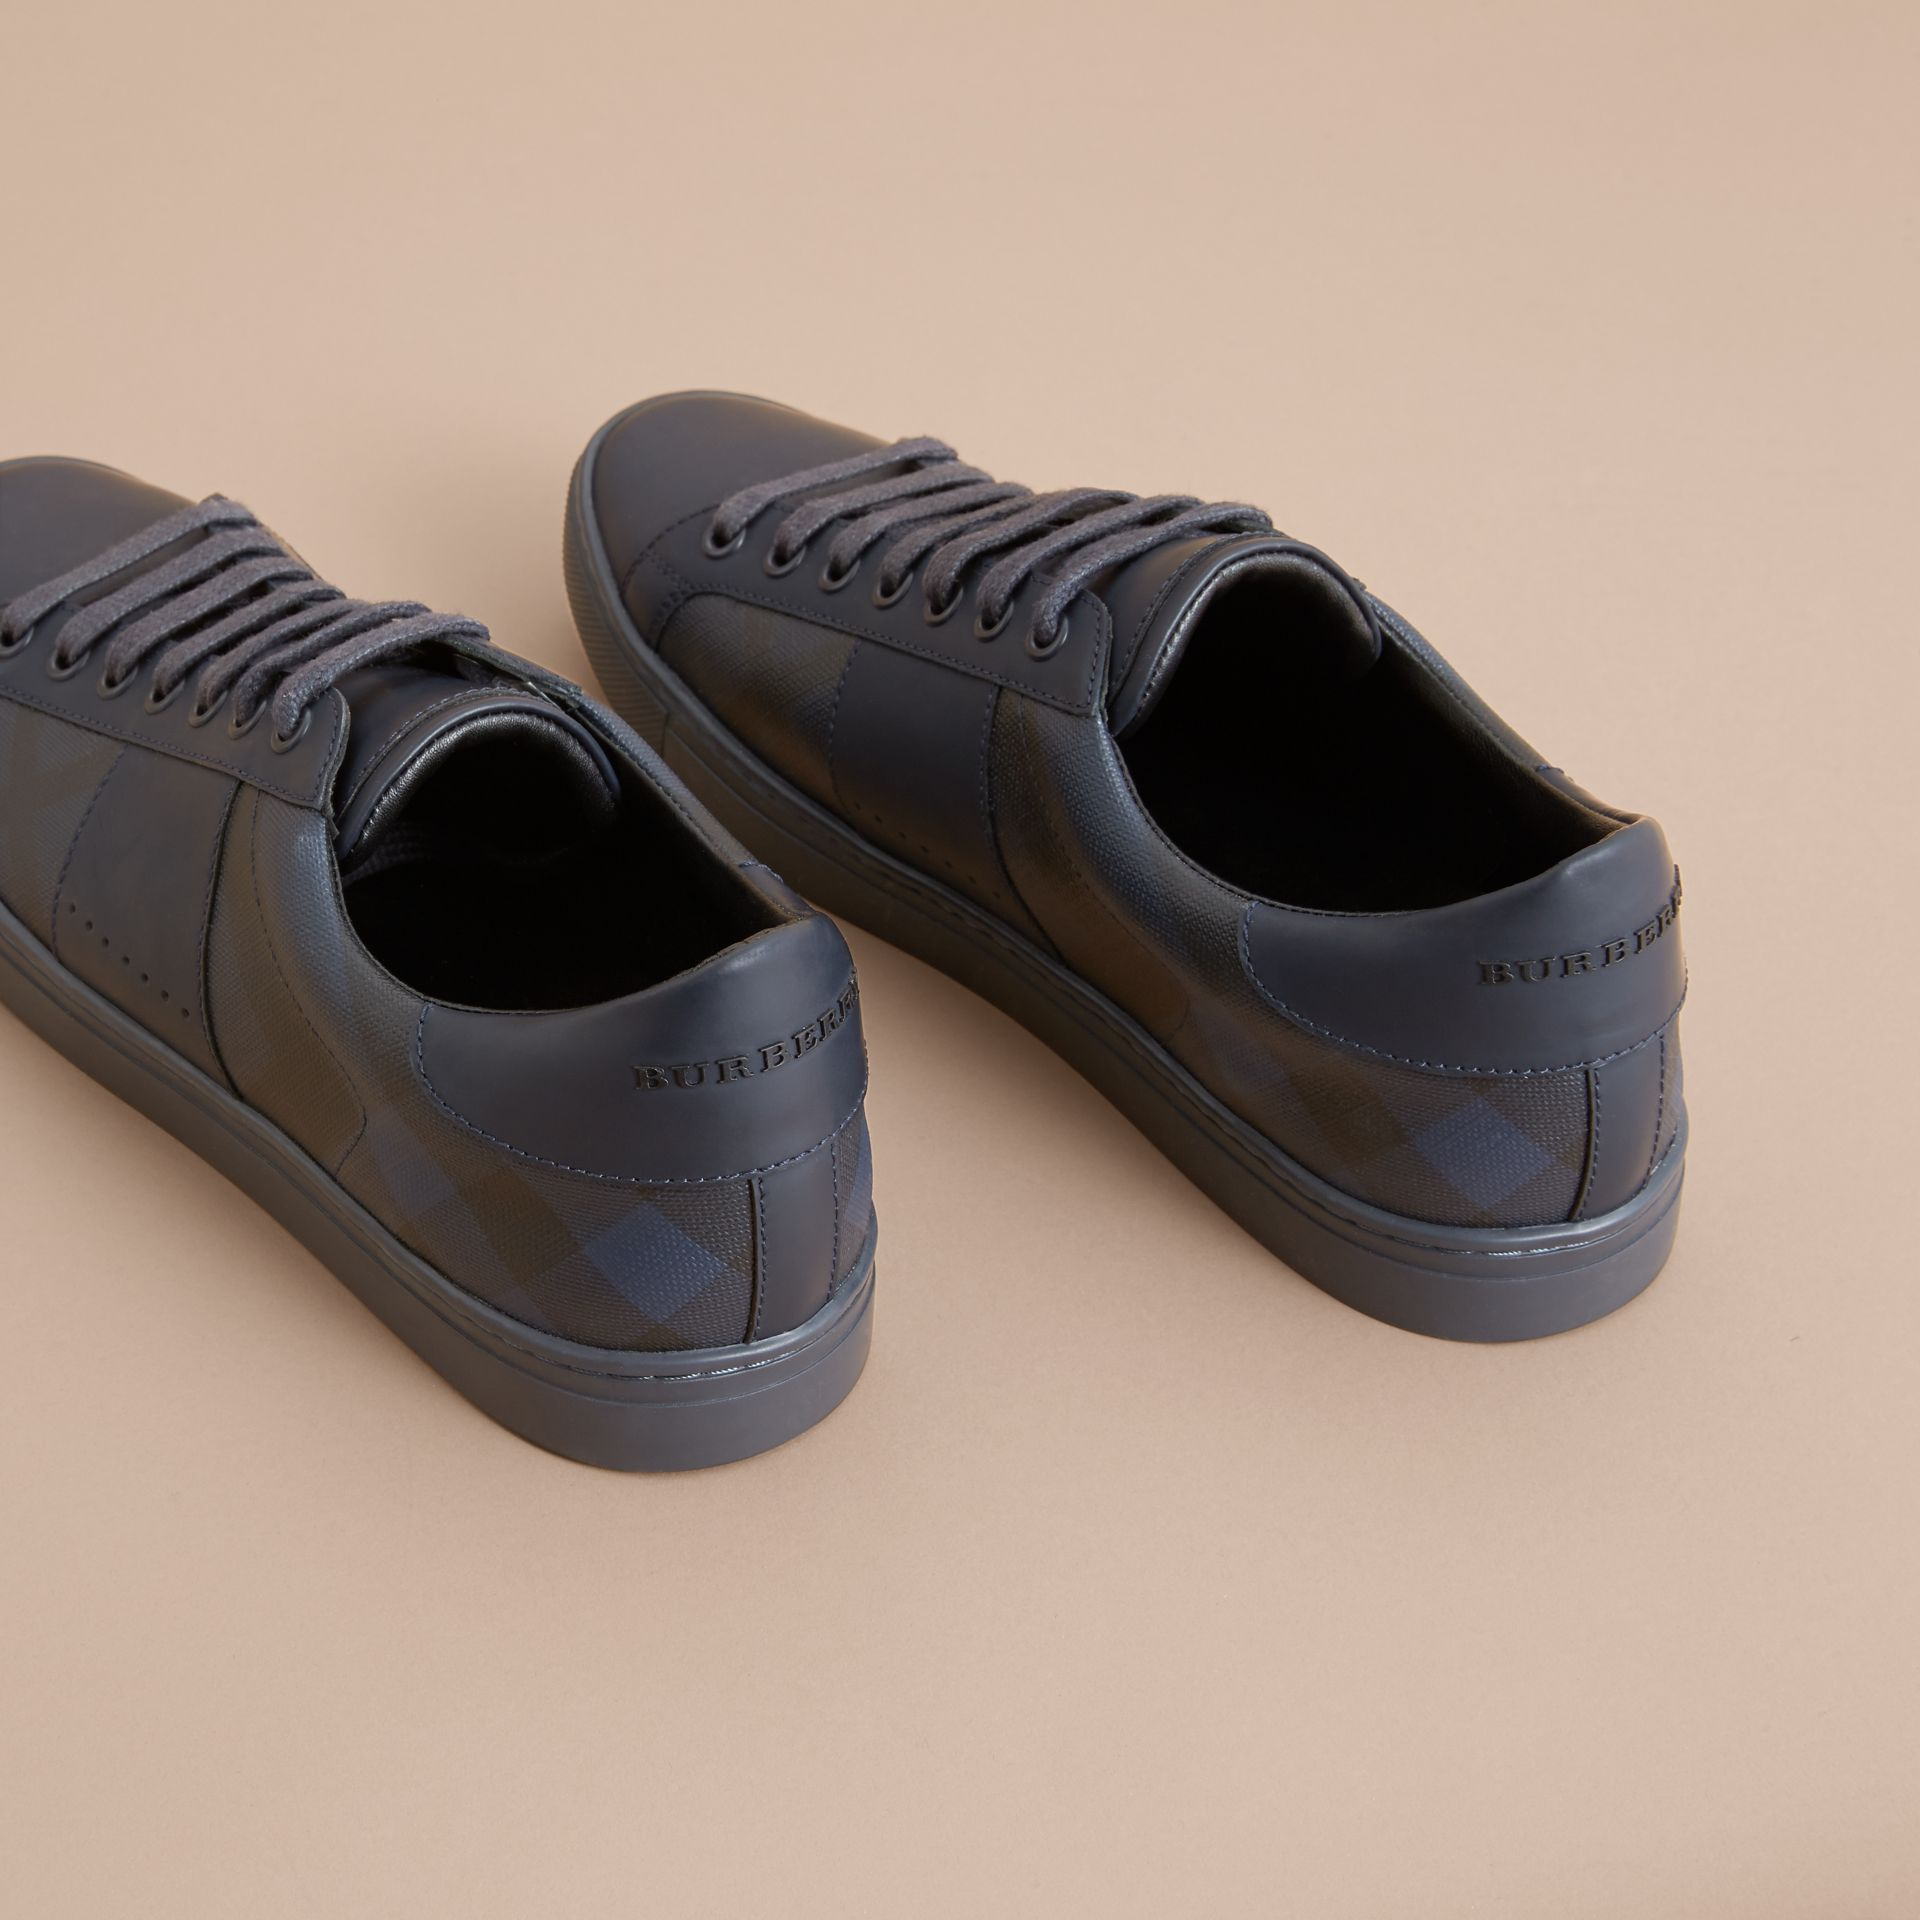 London Check and Leather Sneakers in Navy - Men | Burberry United Kingdom - gallery image 3